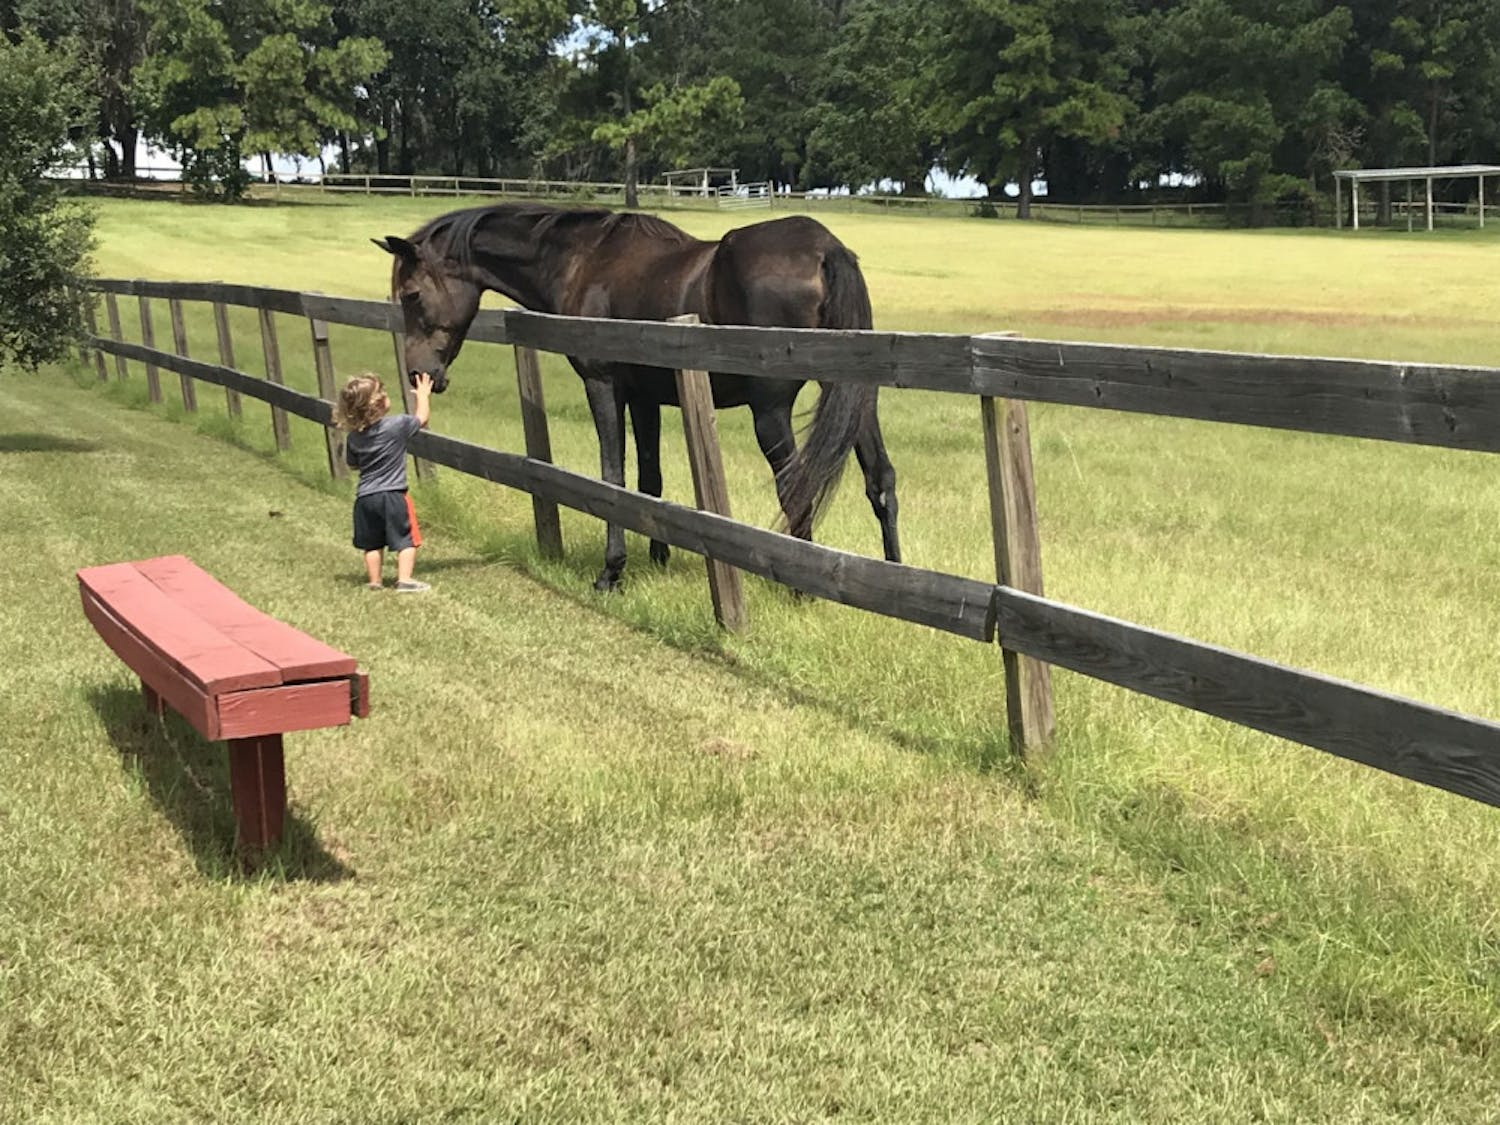 A young boy, Liam, and a horse become friendly, as he pets the horse's nose. Liam's family, meanwhile, has the attention of another horse nearby.